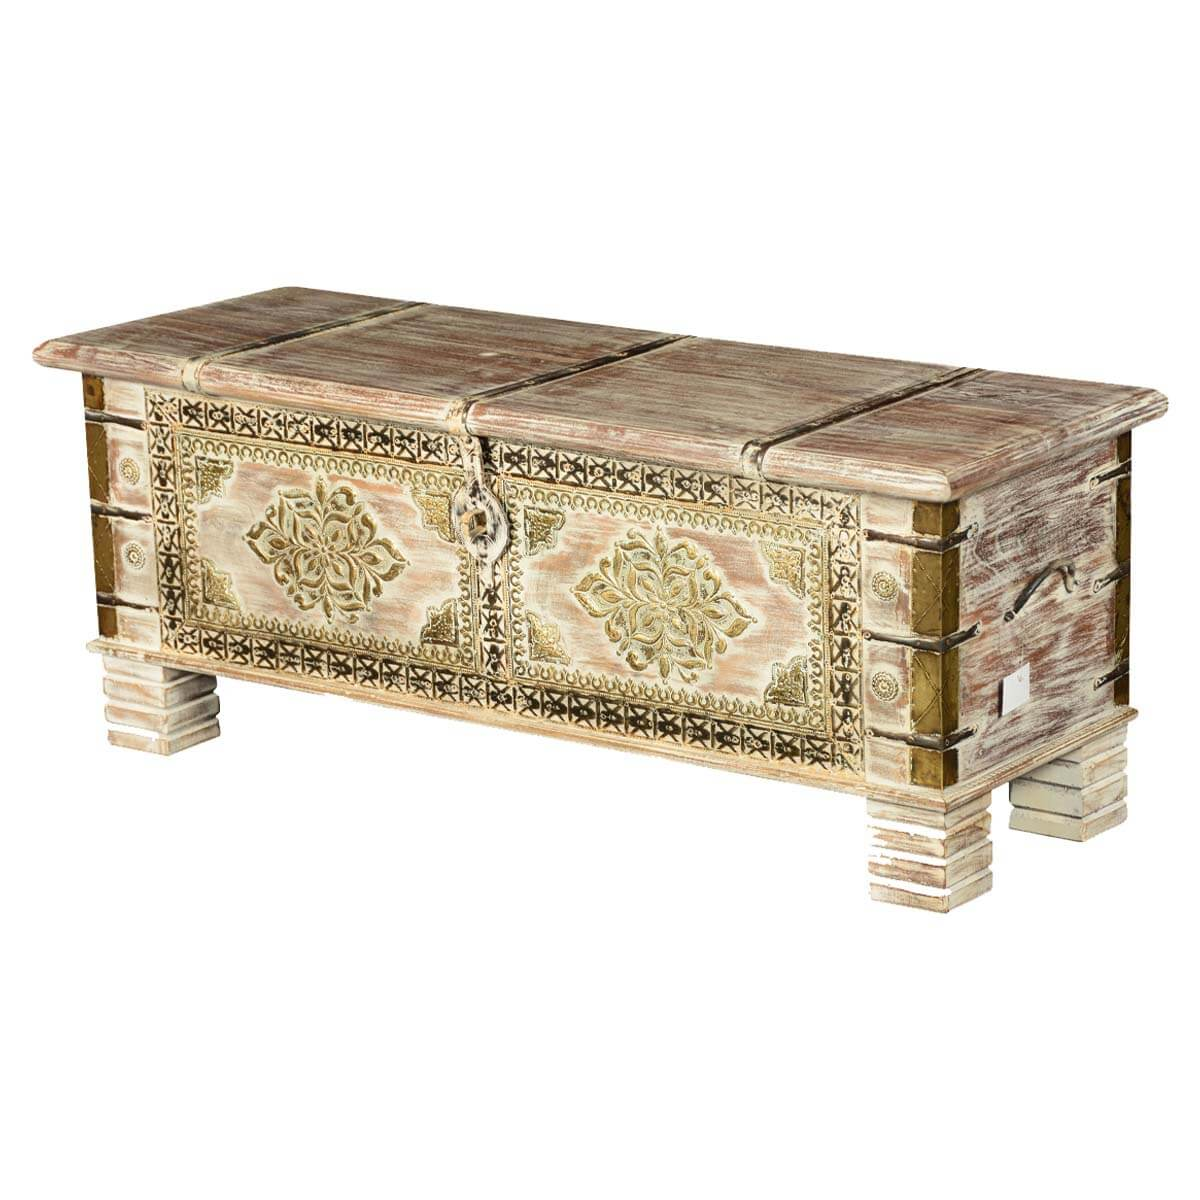 Winter white double diamond mango wood storage coffee table chest Coffee table chest with storage